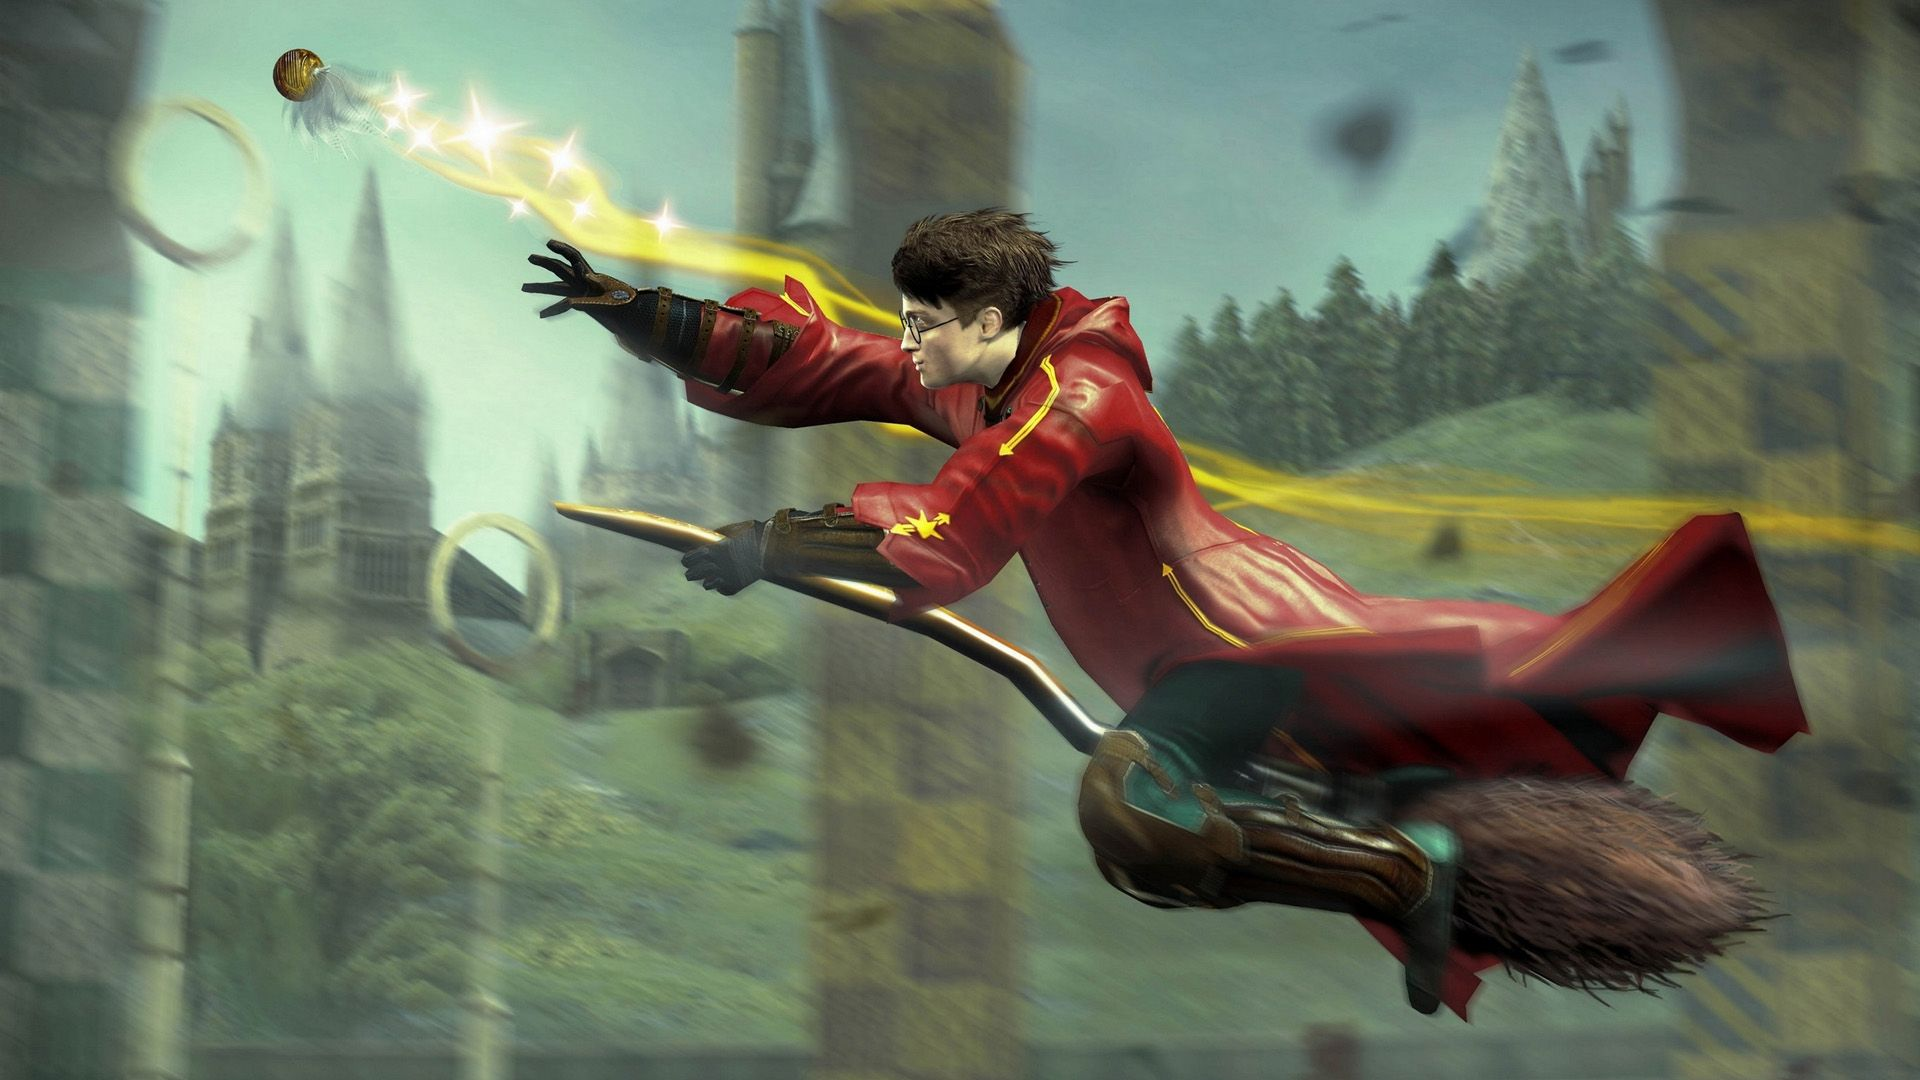 1920x1080 harry potter quidditch broom 1920×1080 – Digital Citizen